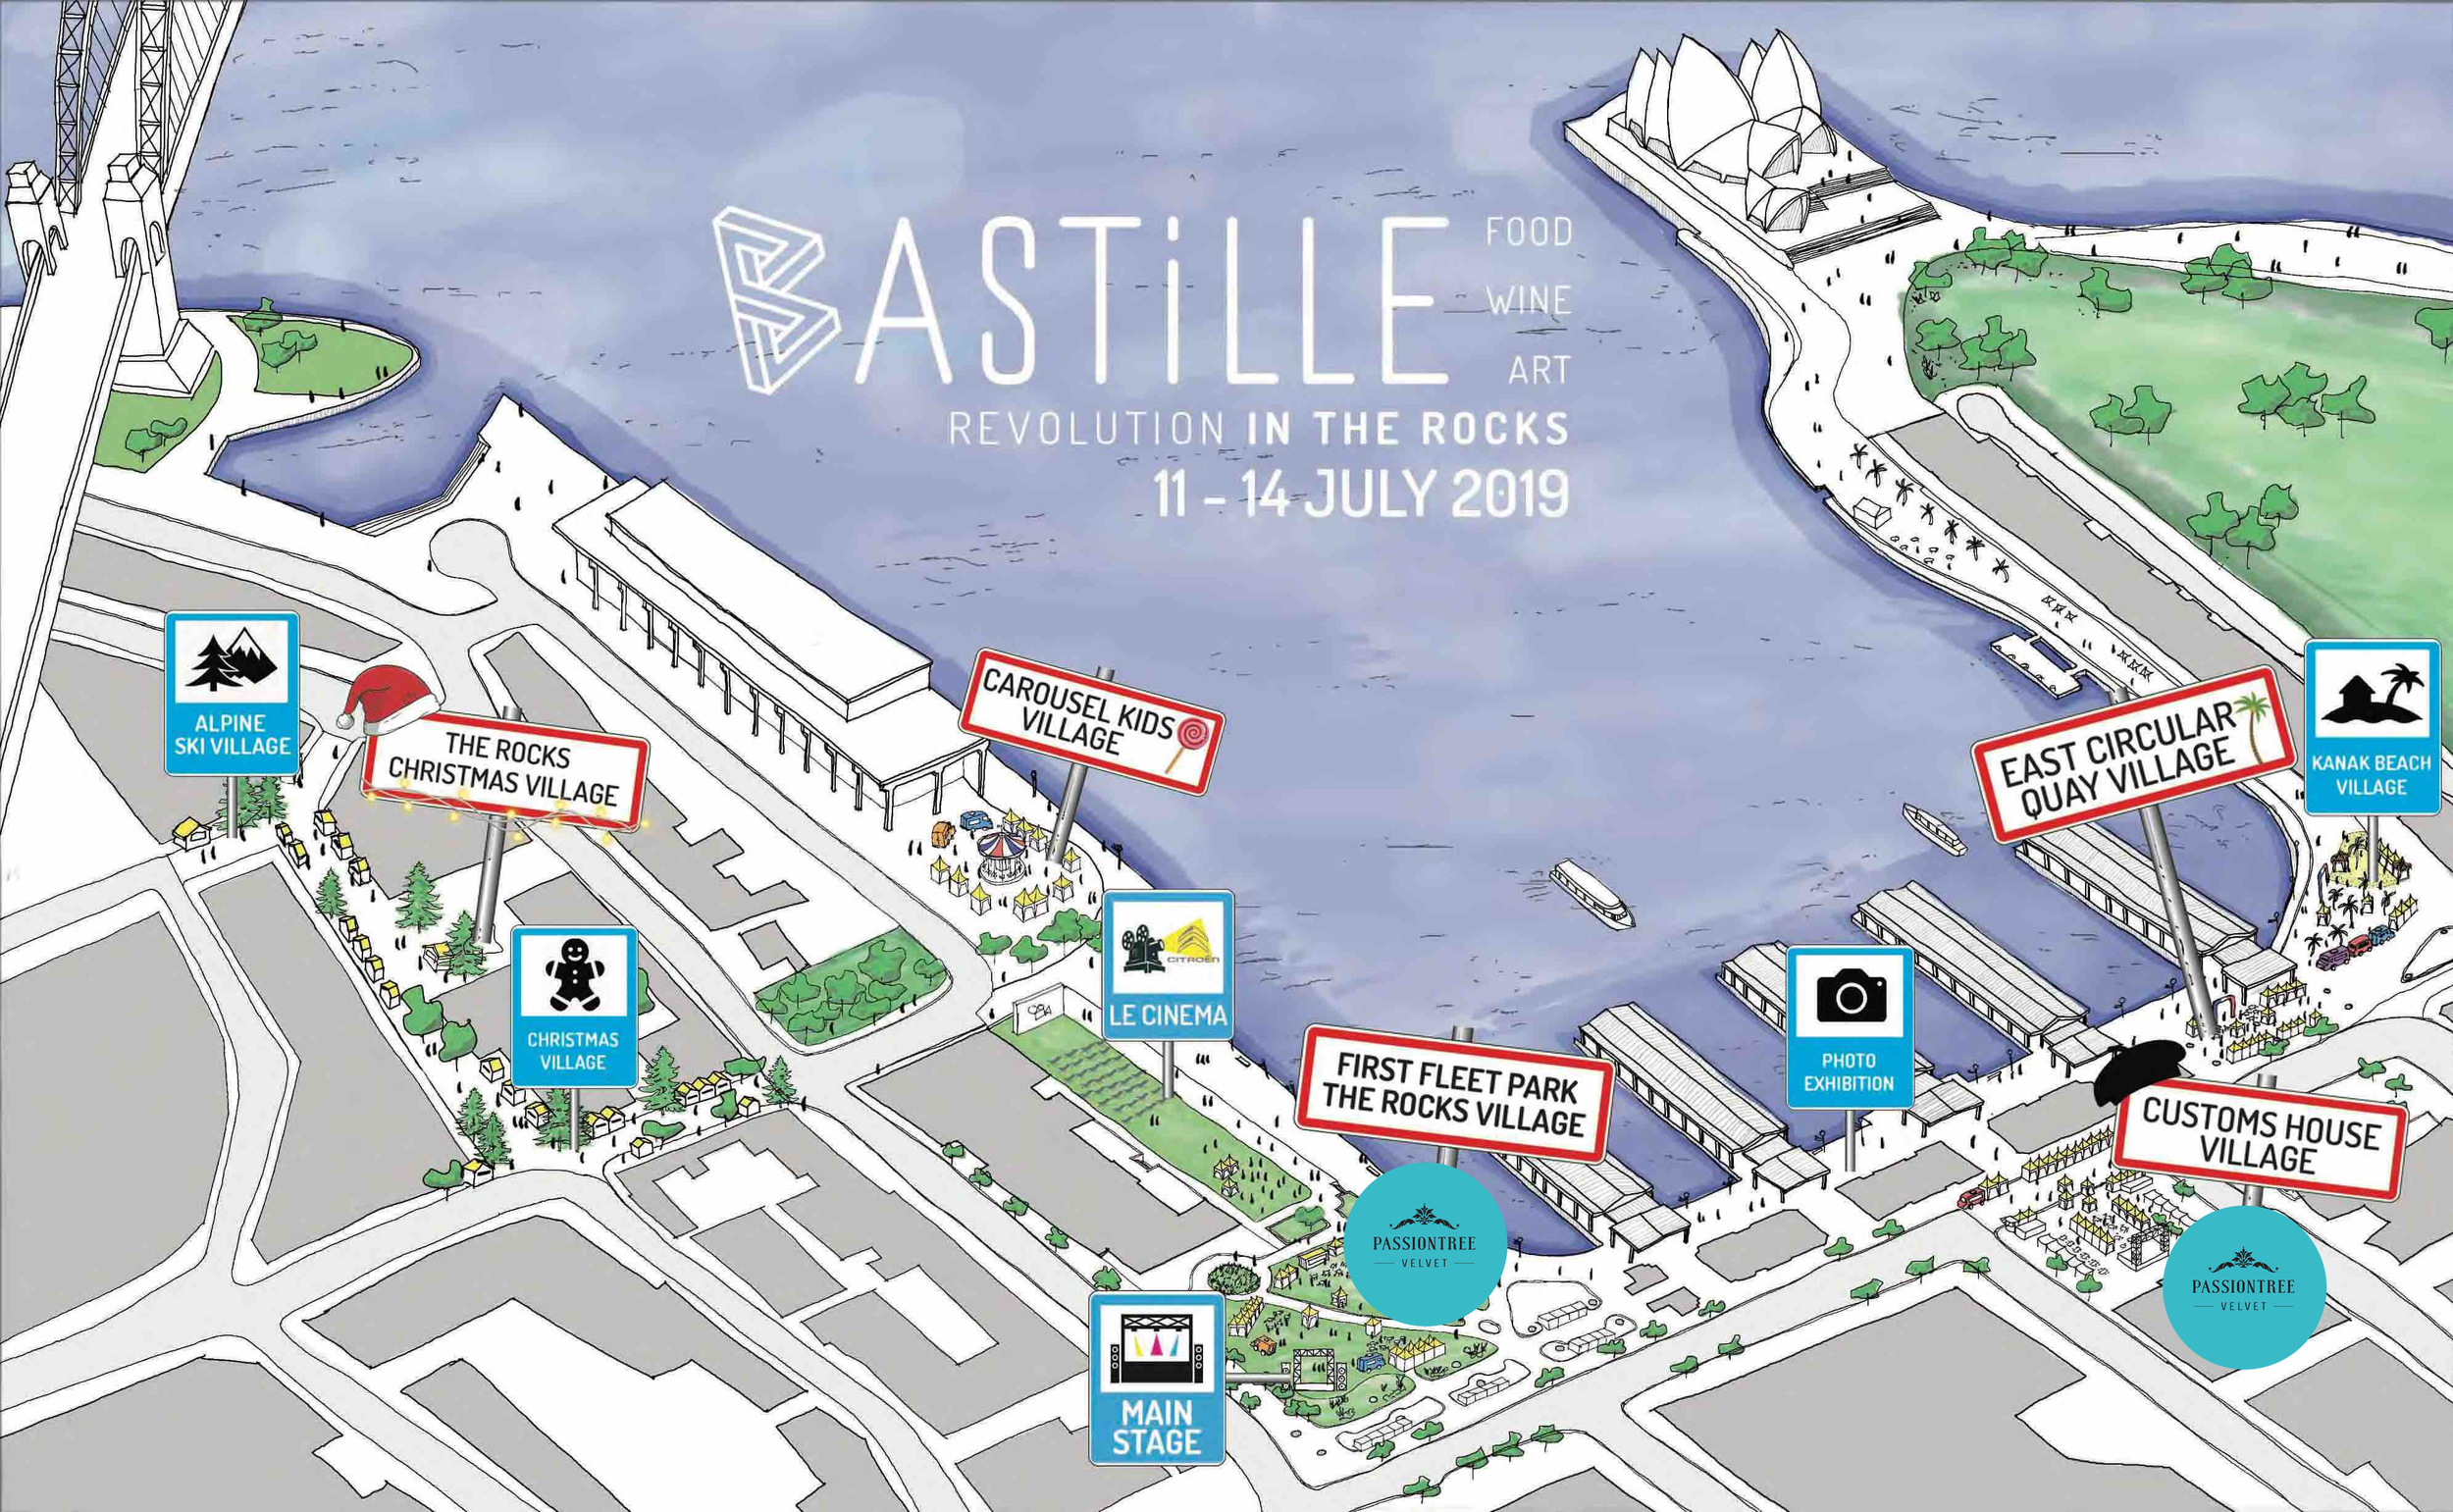 Passiontree Velvet will be located in First Fleet Park  and  Customs House Village from July 11th-July 14th, 2019